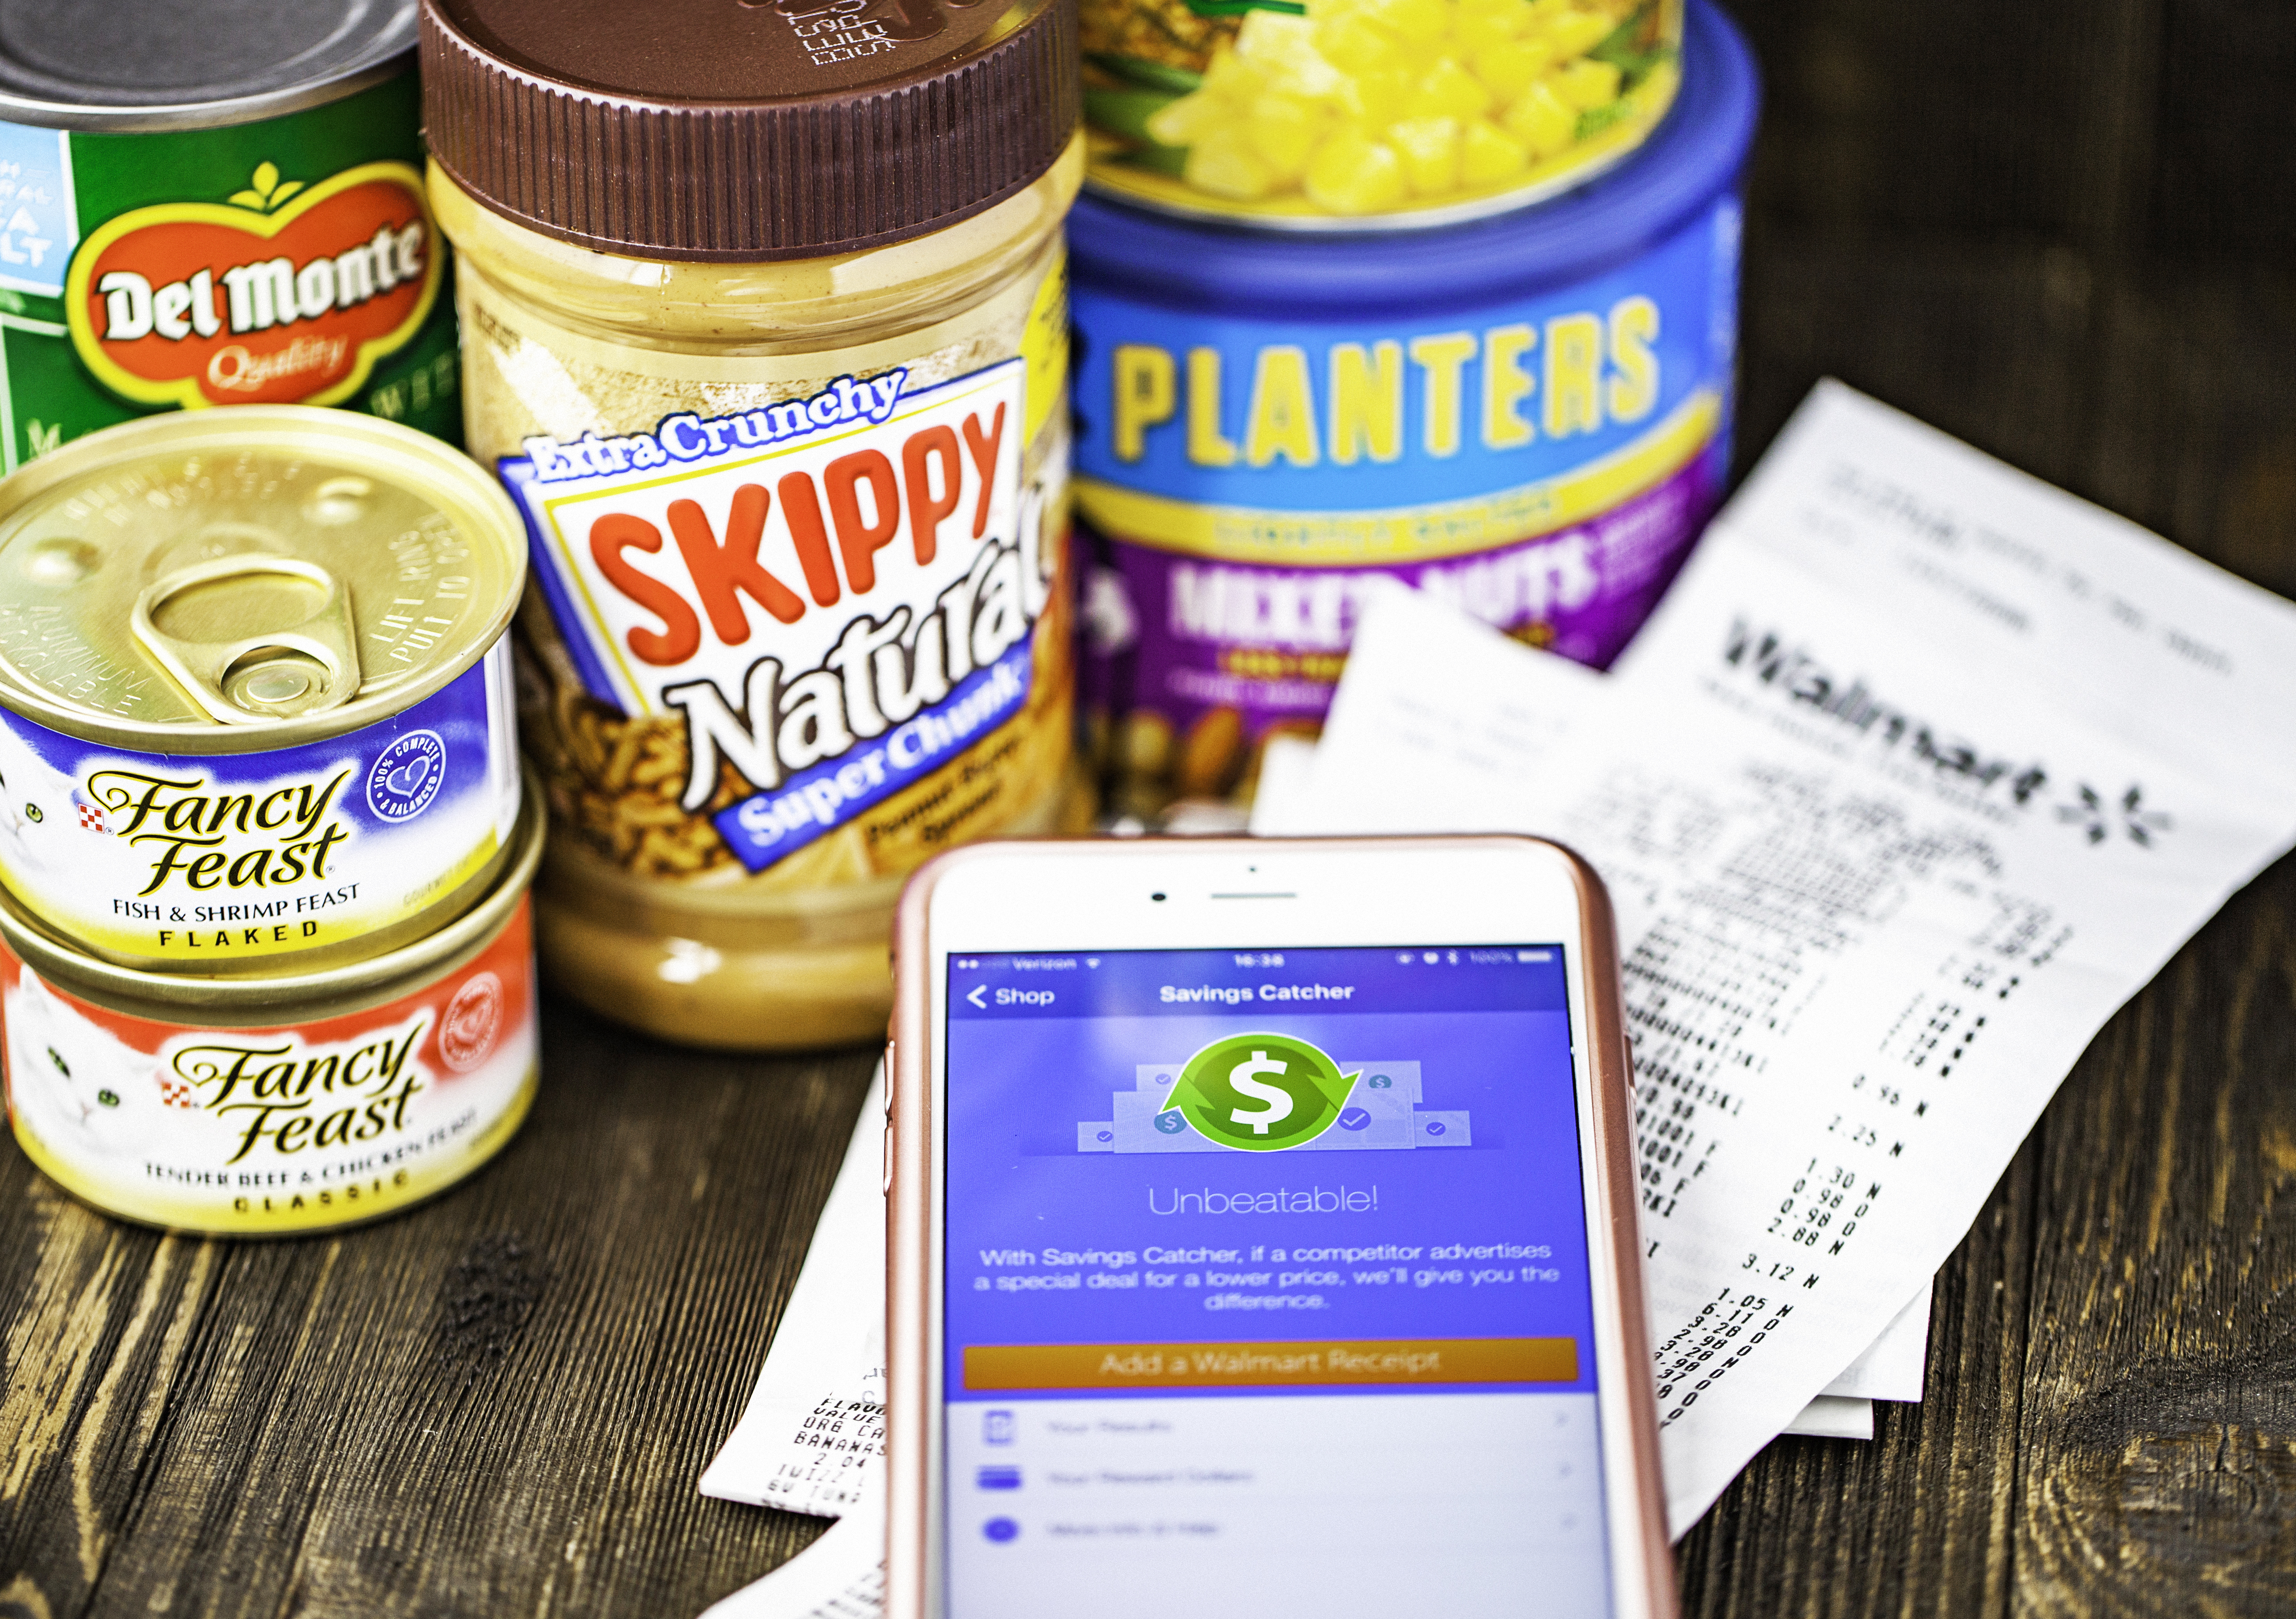 Walmart Savings Catcher App on iPhone screen and assorted groceries